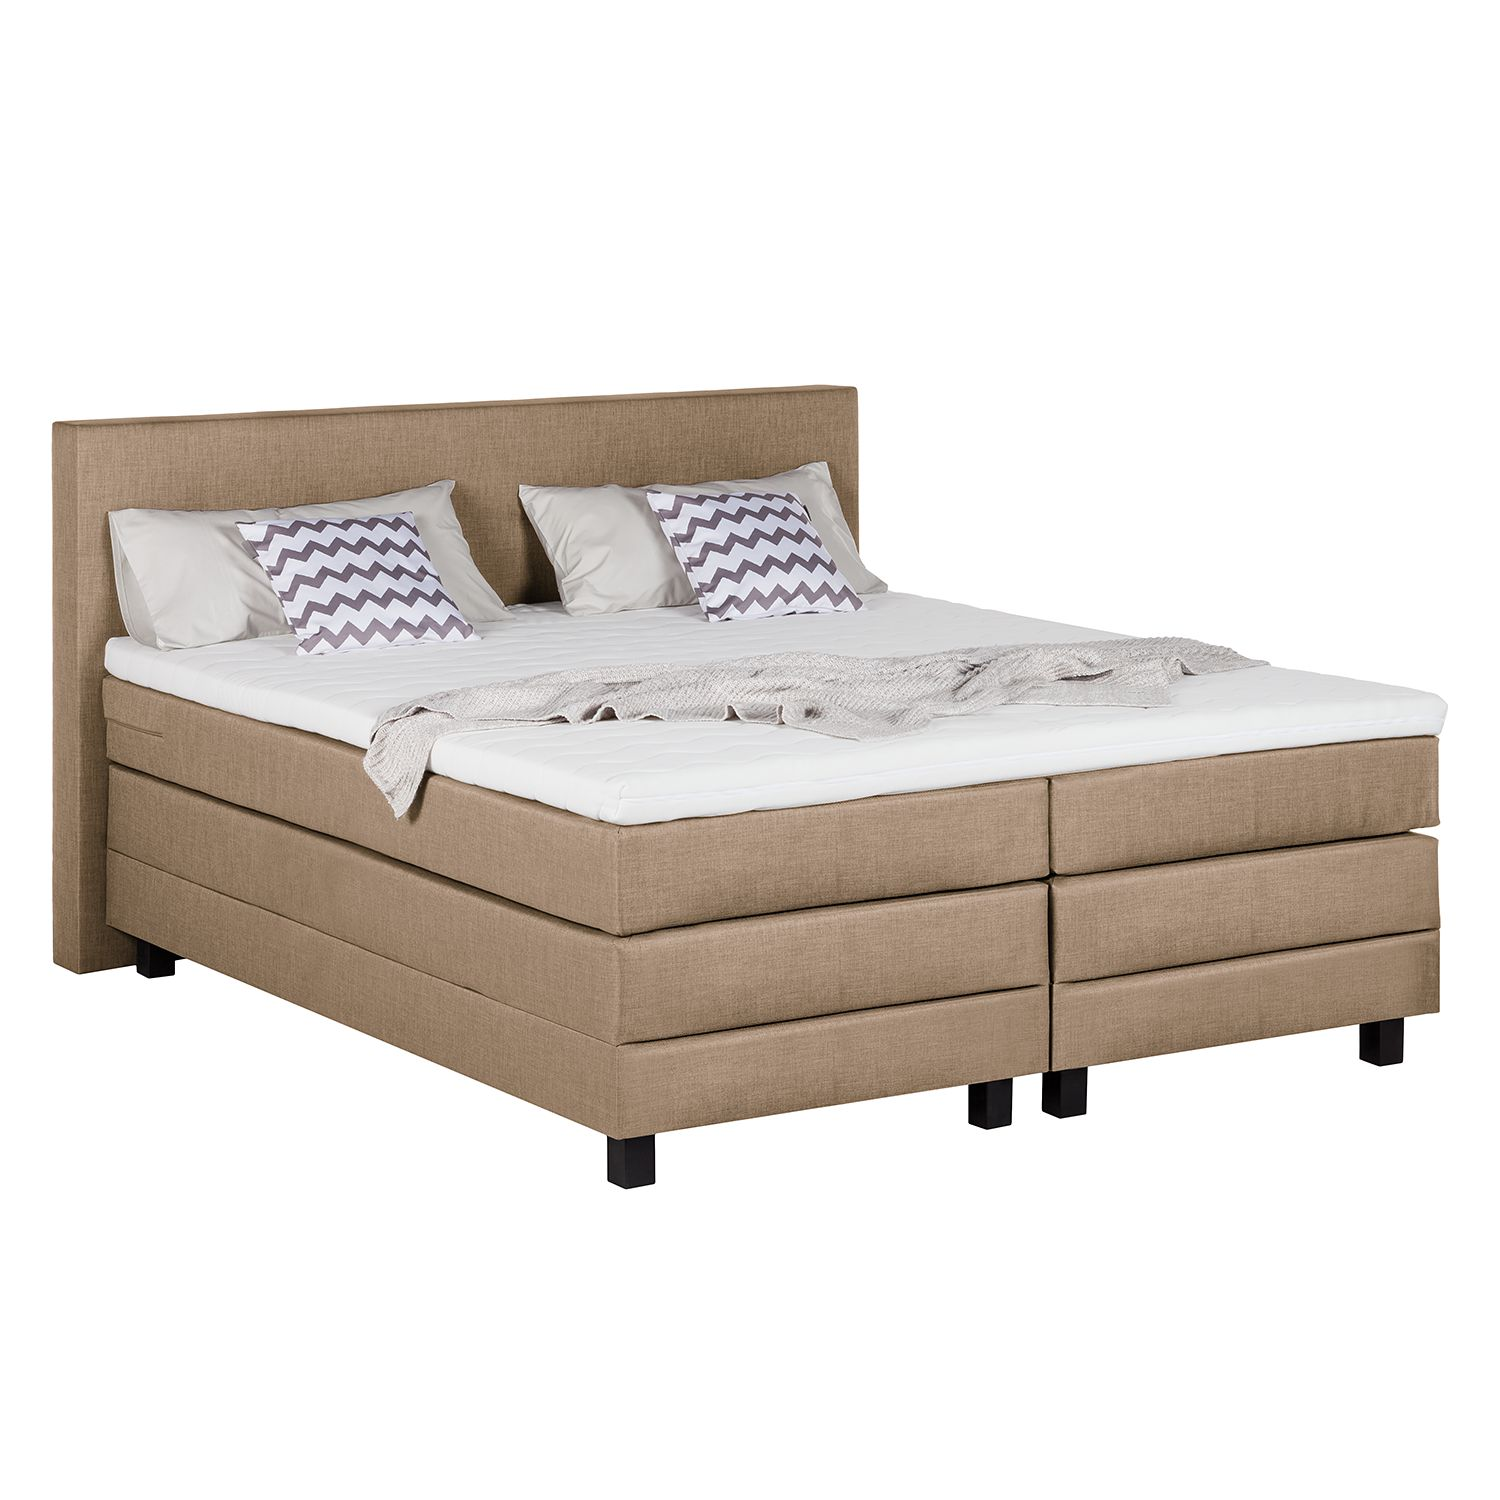 Boxspringbett Splendid Night II - 200 x 200cm - H3 ab 80 kg - Taupe, Grand Selection